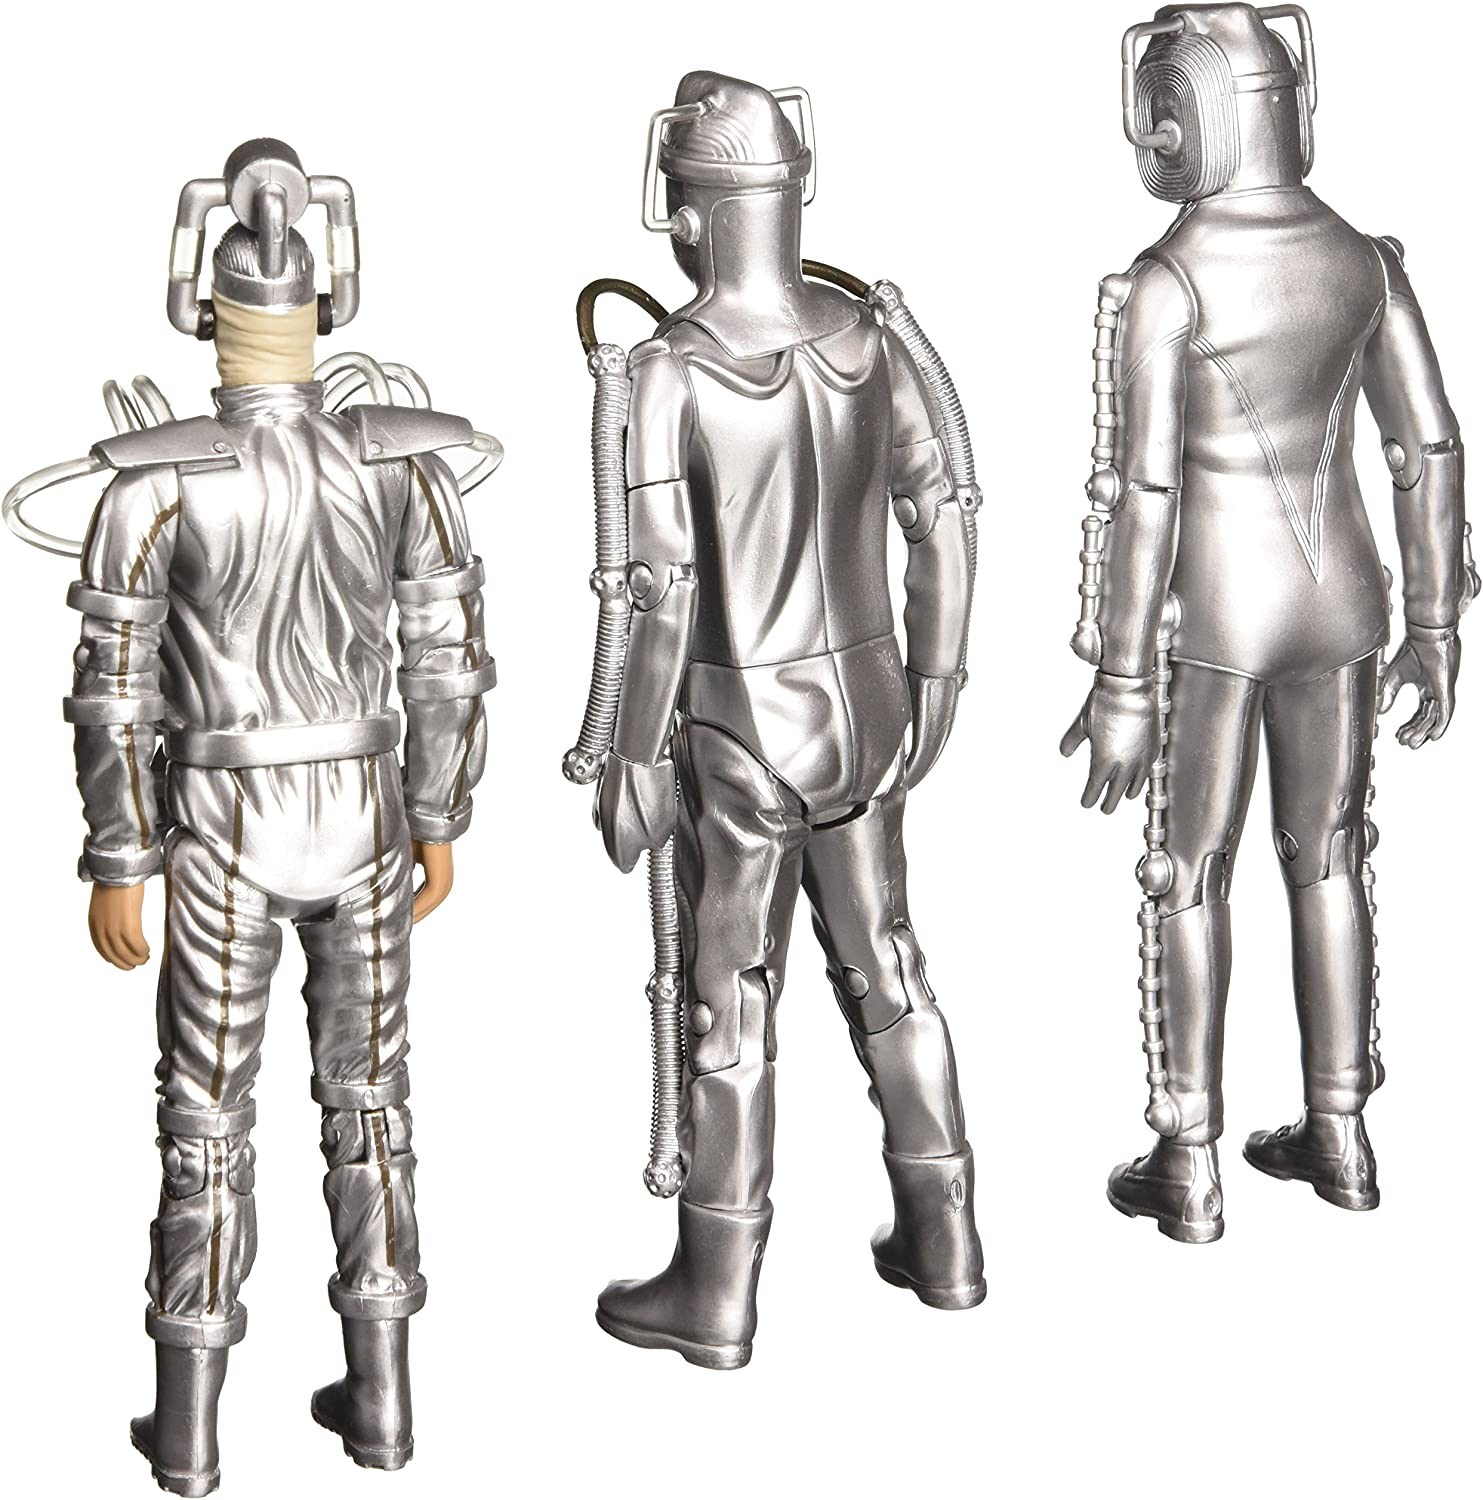 Doctor Who CLASSIC INVASION CYBERMAN Action Figure OLD head lost some